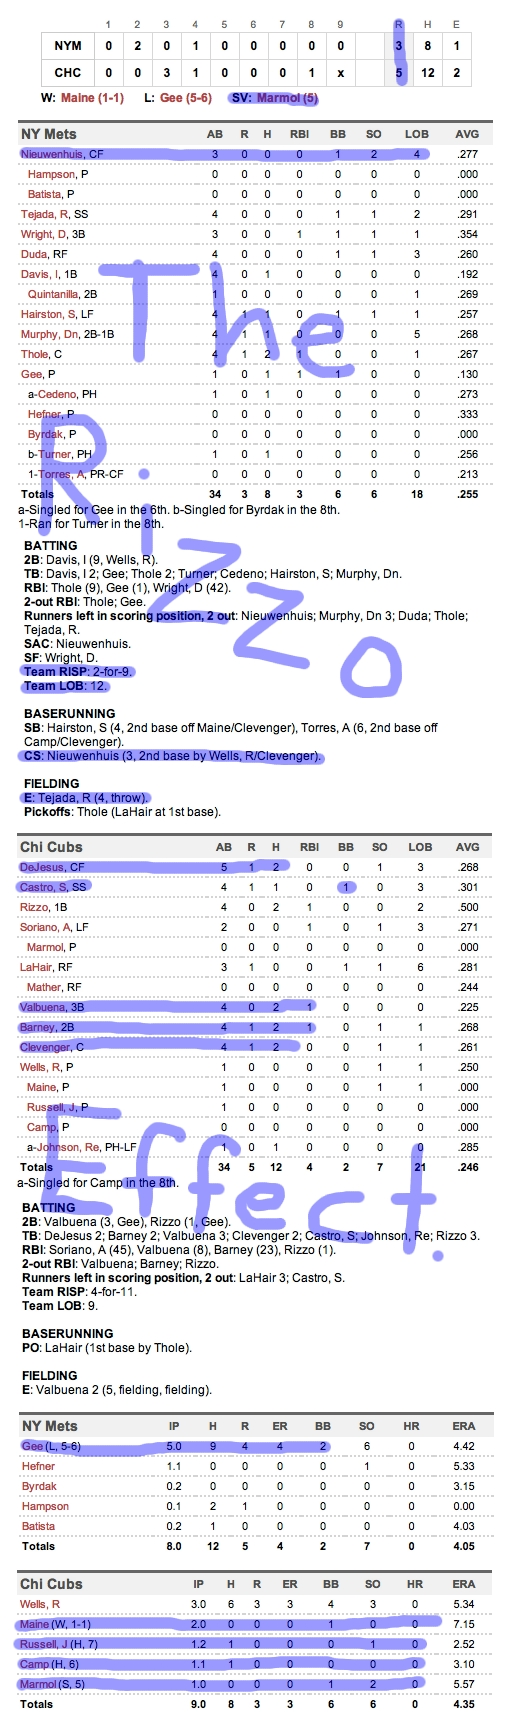 Enhanced Box Score: Mets 3, Cubs 5 – June 26, 2012